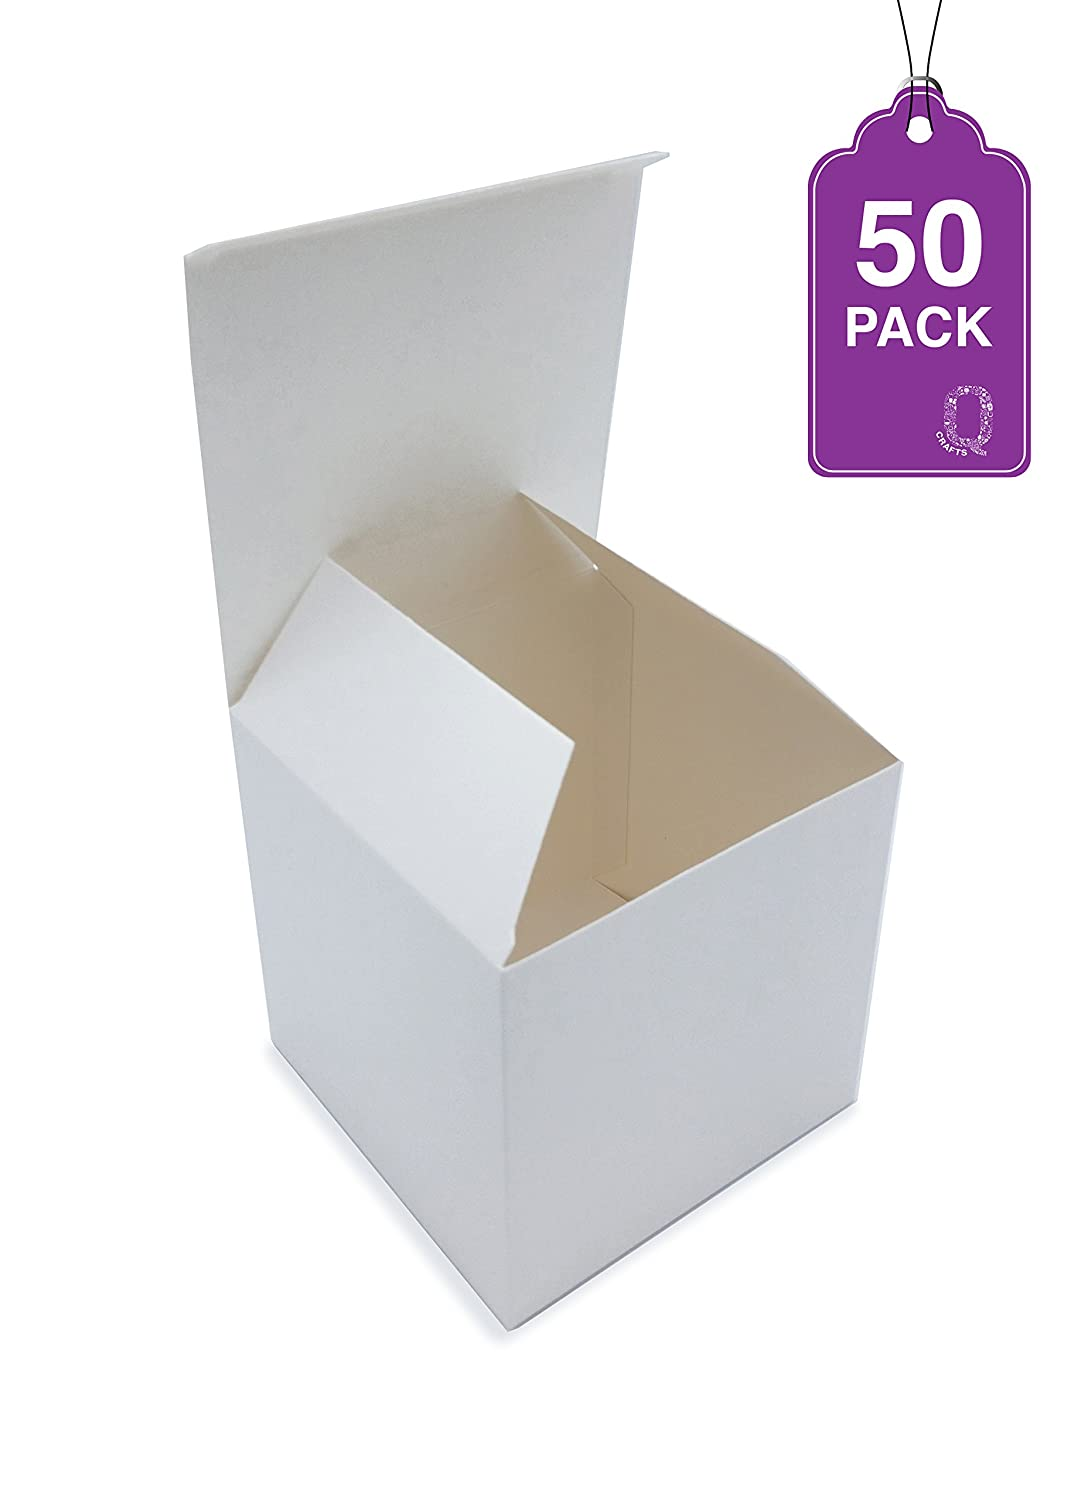 Gift Boxes White 50 Pack 4 x 4 x 4 Cupcake boxes, Craft box